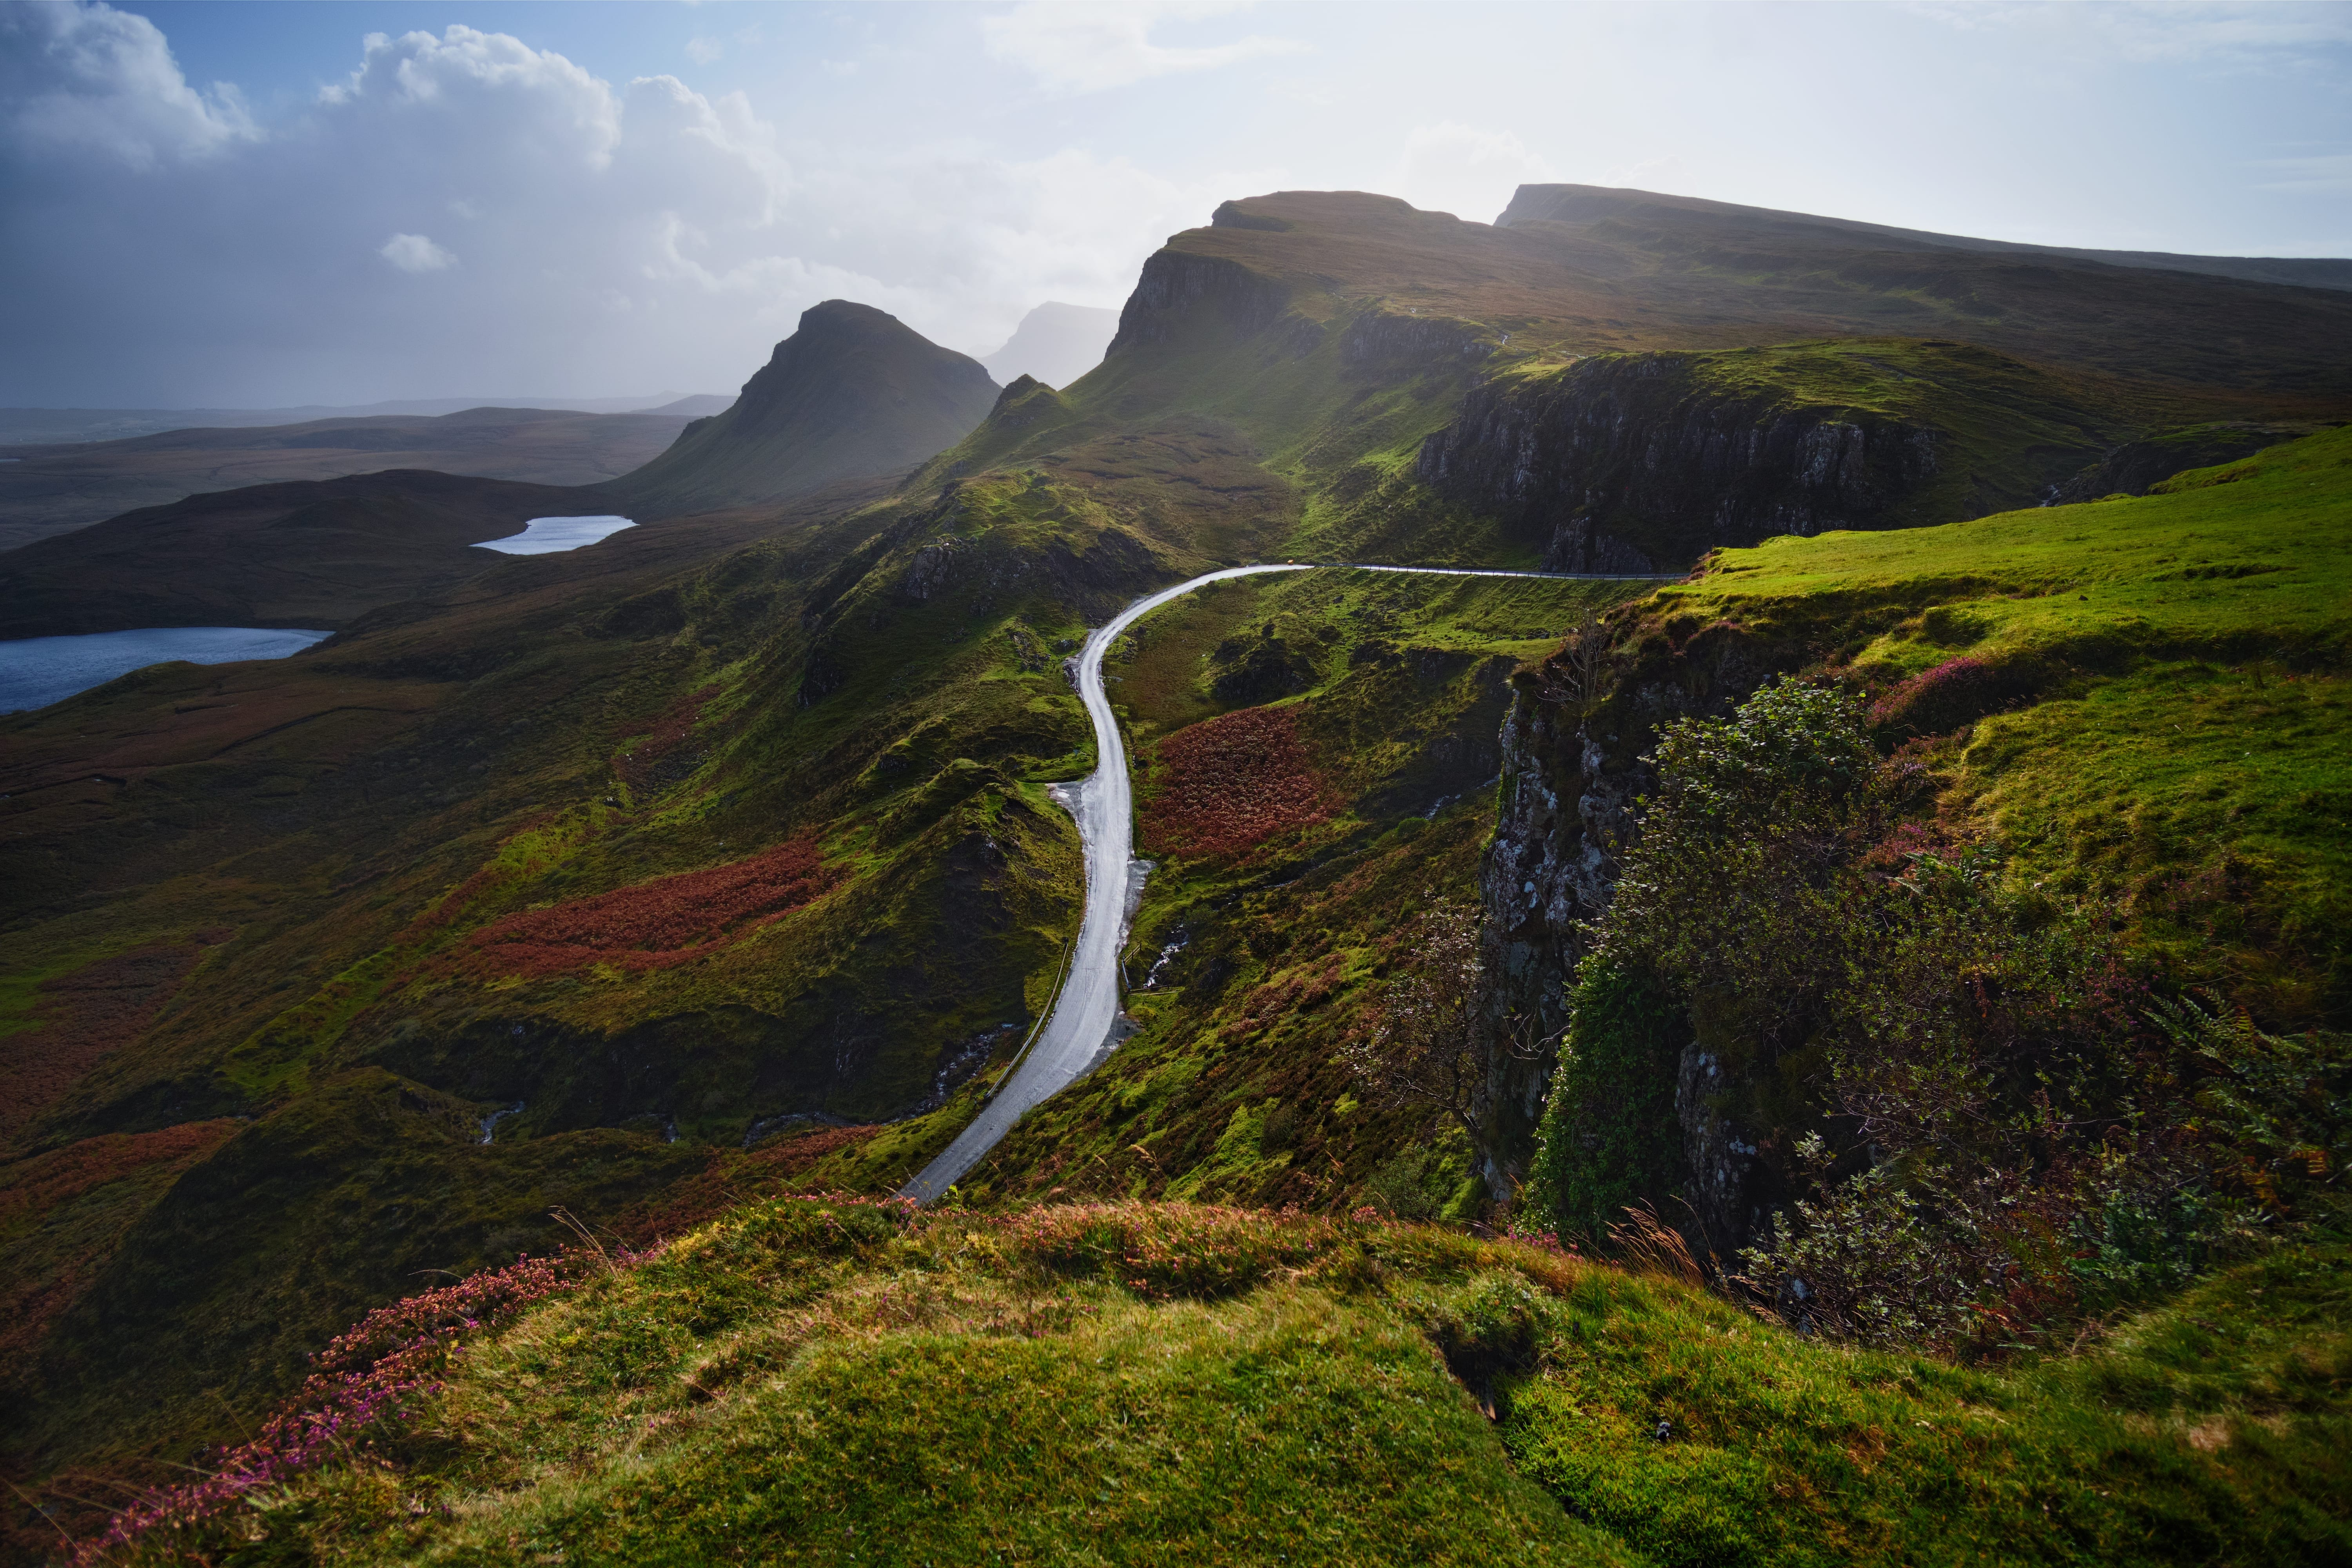 69975 download wallpaper Nature, Road, View From Above, Greens, Mountains, Landscape screensavers and pictures for free